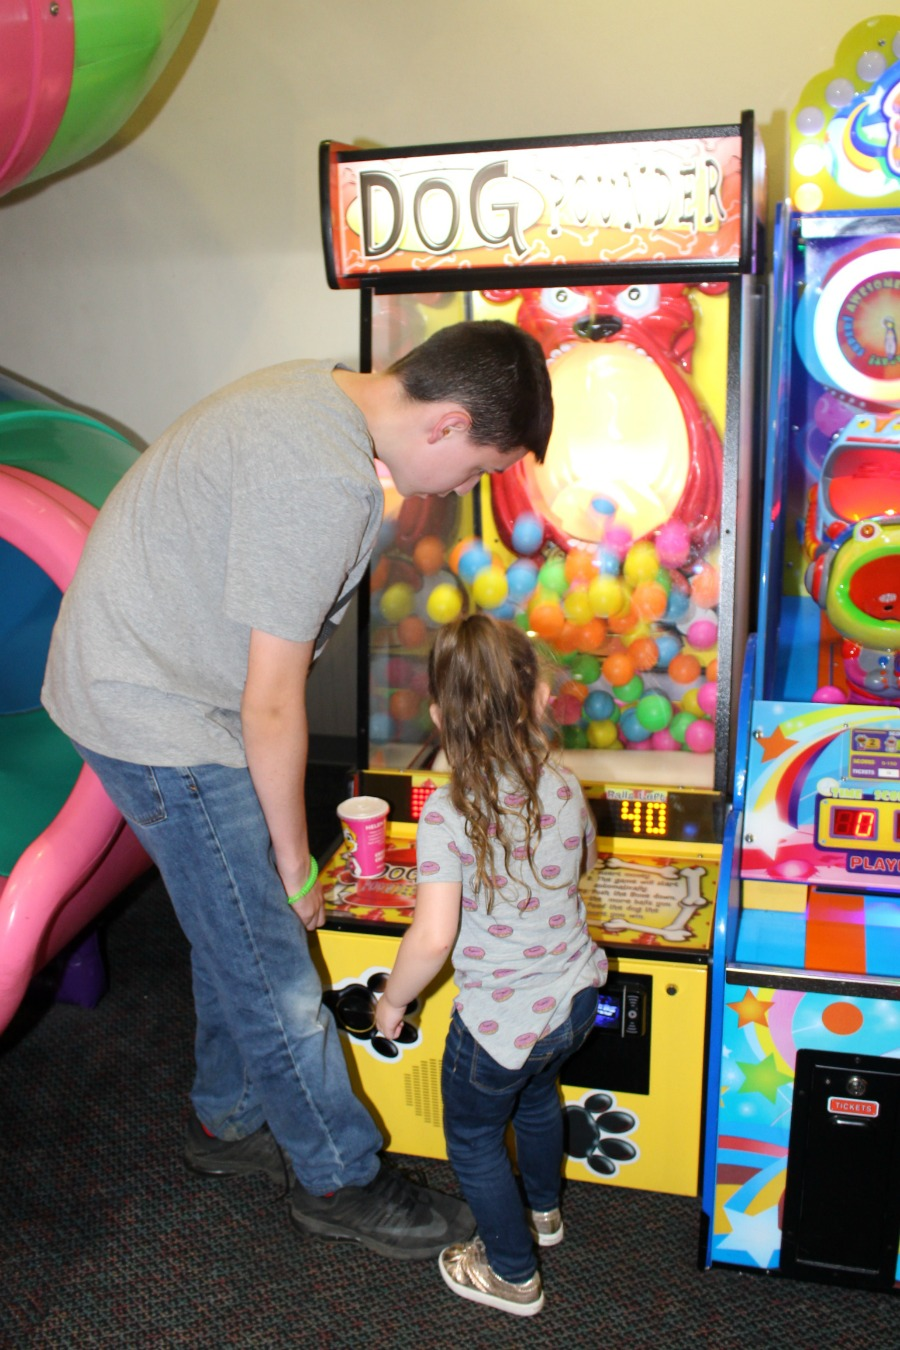 School's out! Hit Chuck E. Cheese's for Spring Break Fun that WON'T Break the Bank!